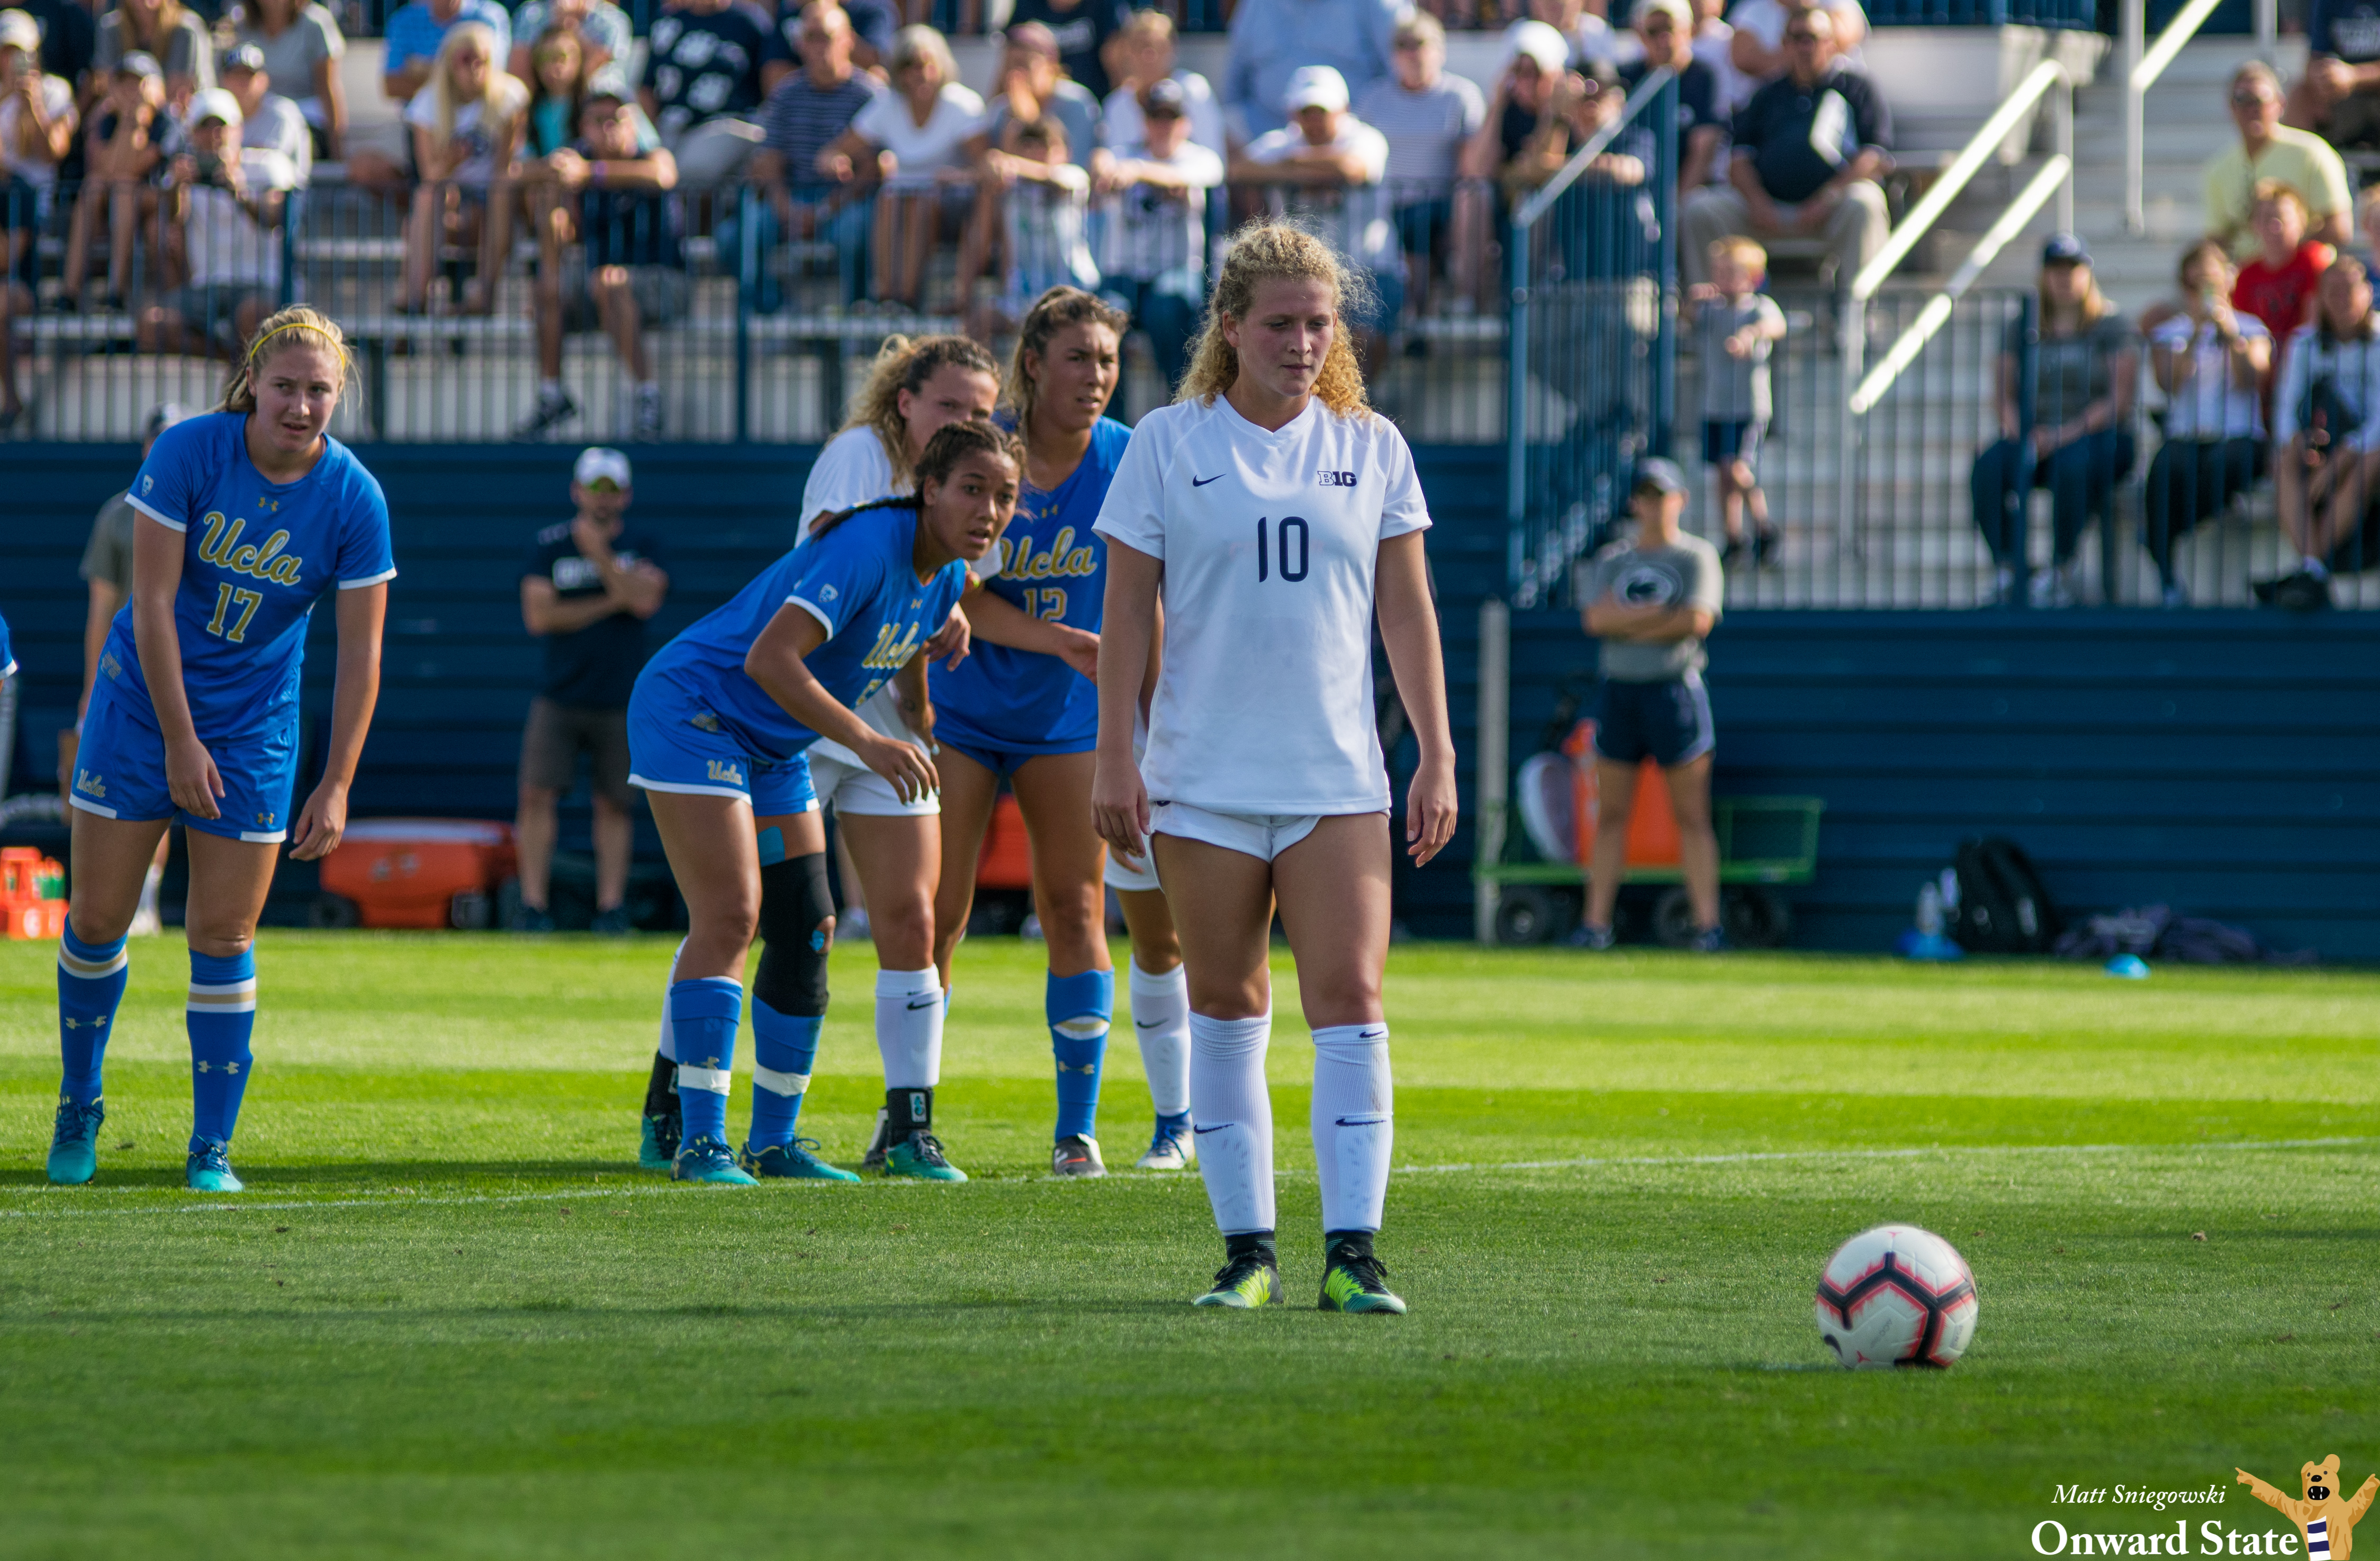 womens non conference soccer action - HD1740×1141